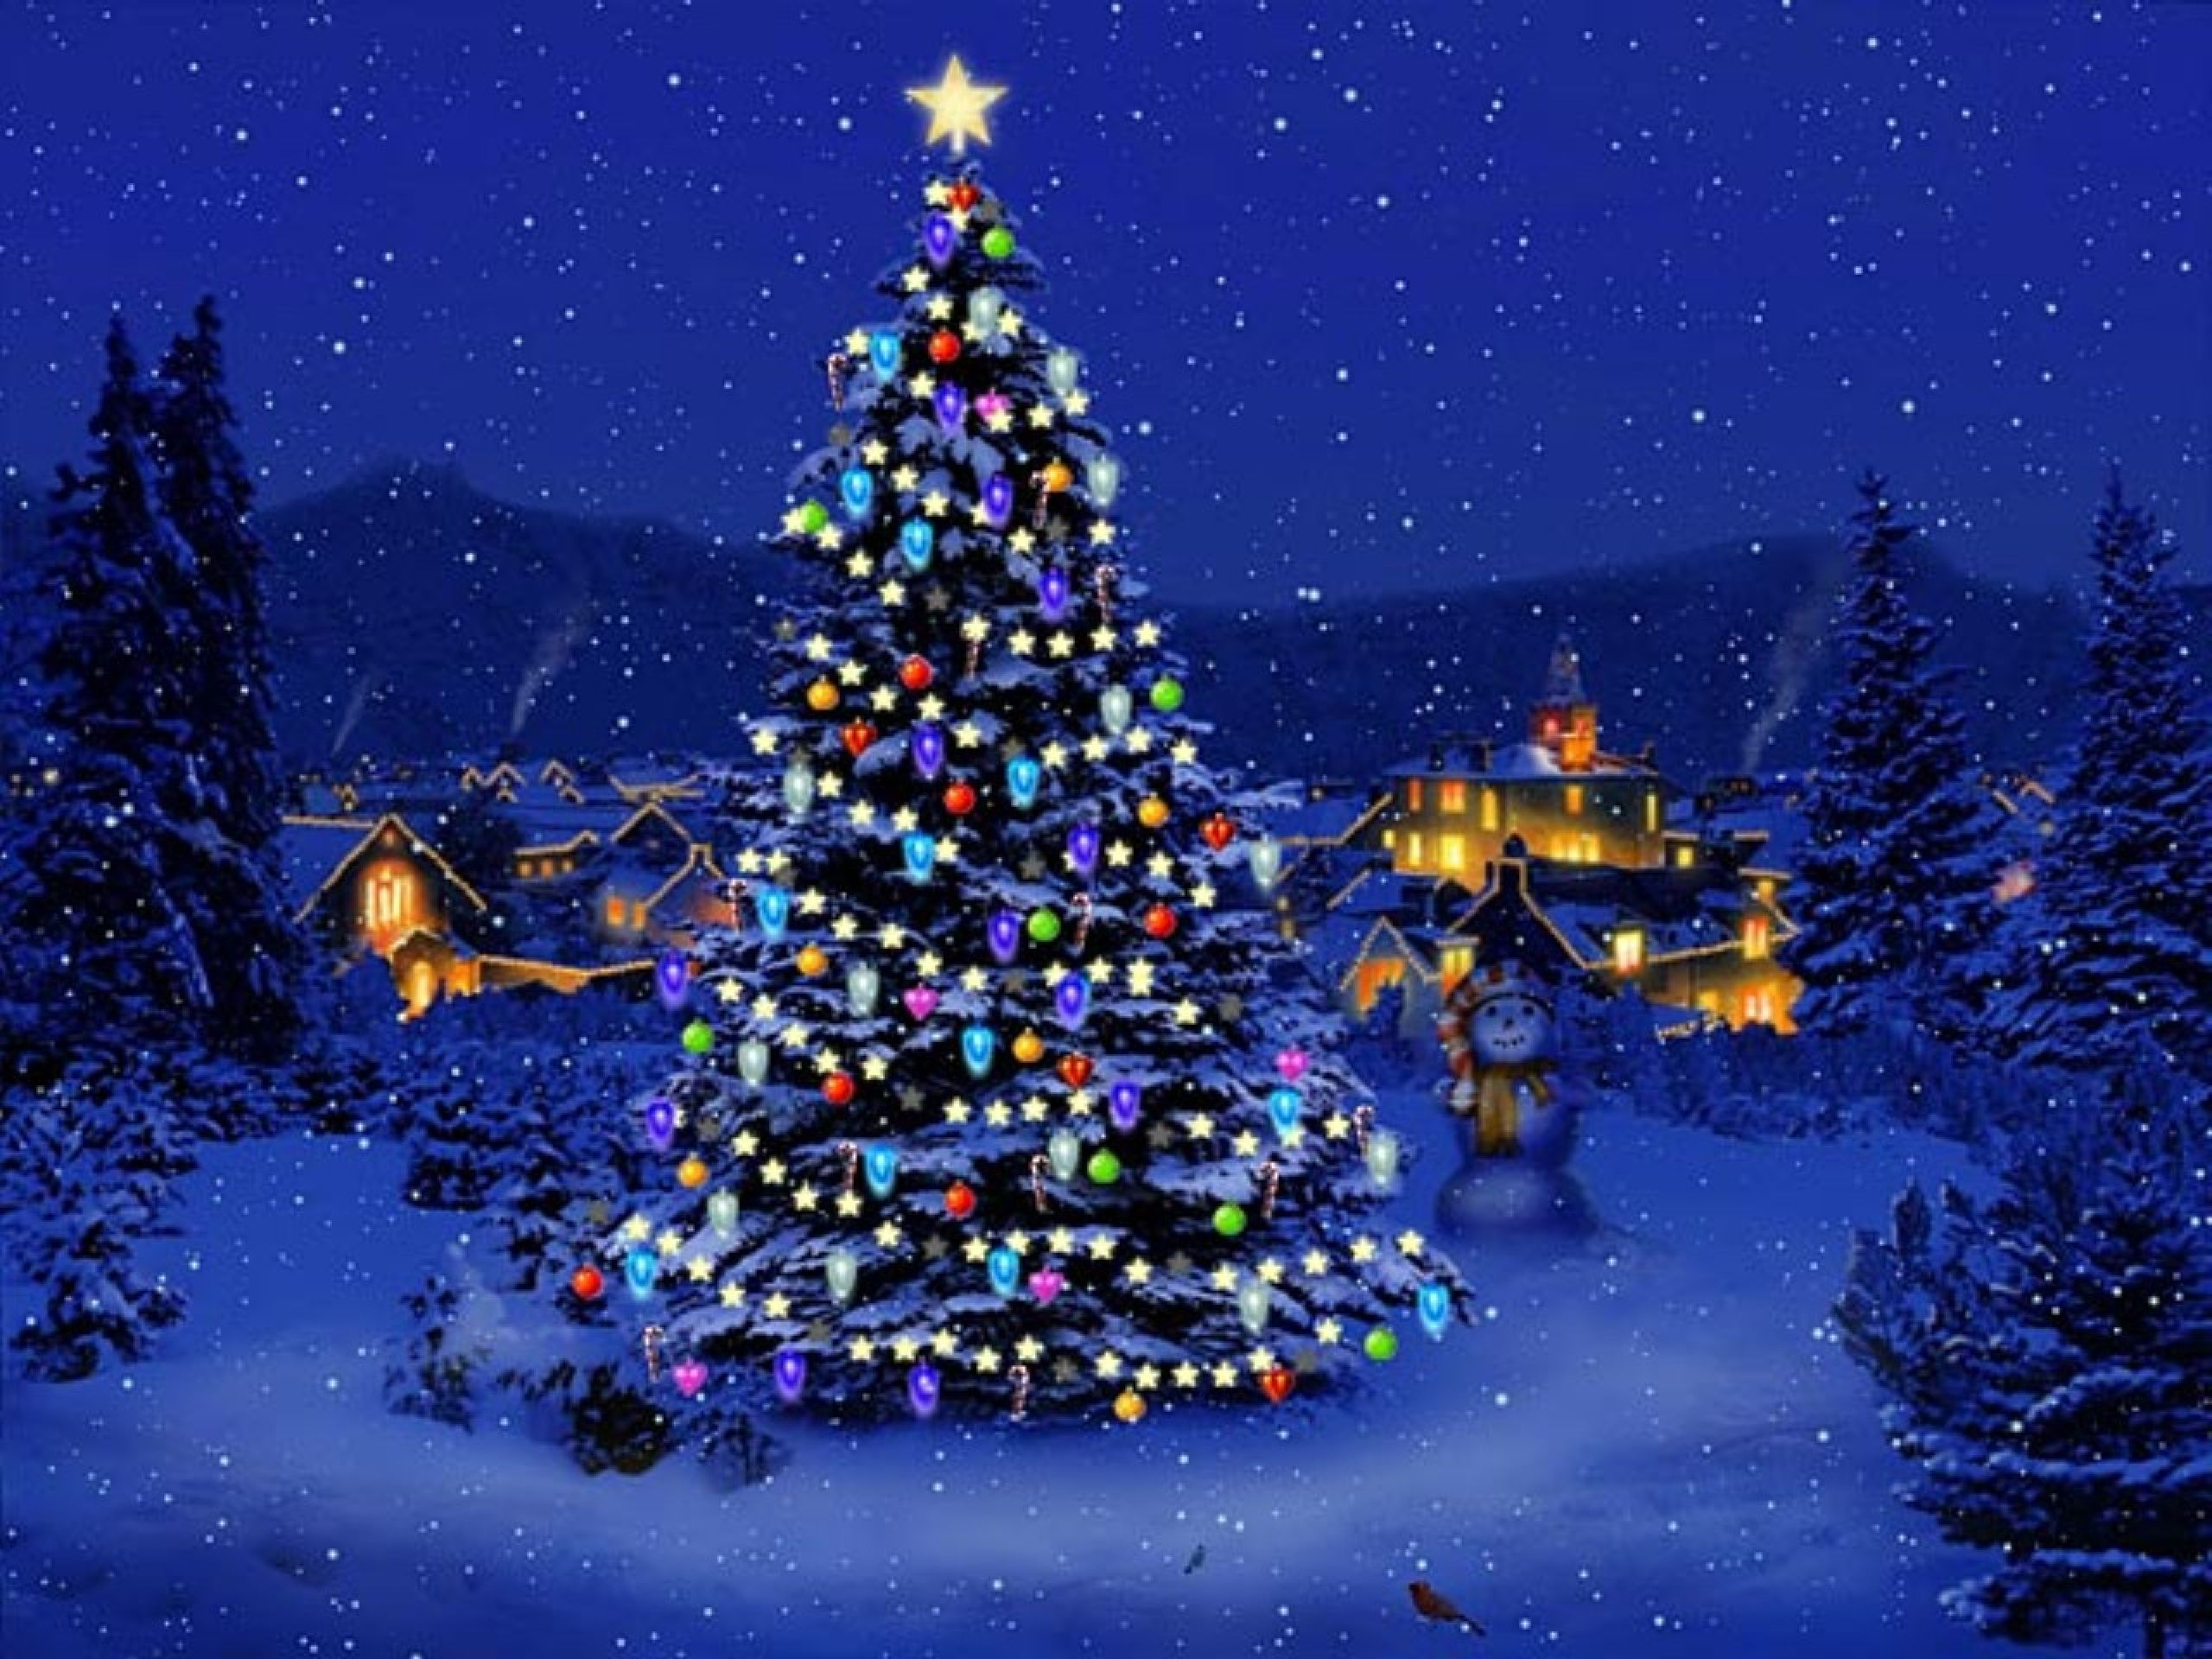 Free Christmas Themes For Windows 7 - Download Wallpapers, Download